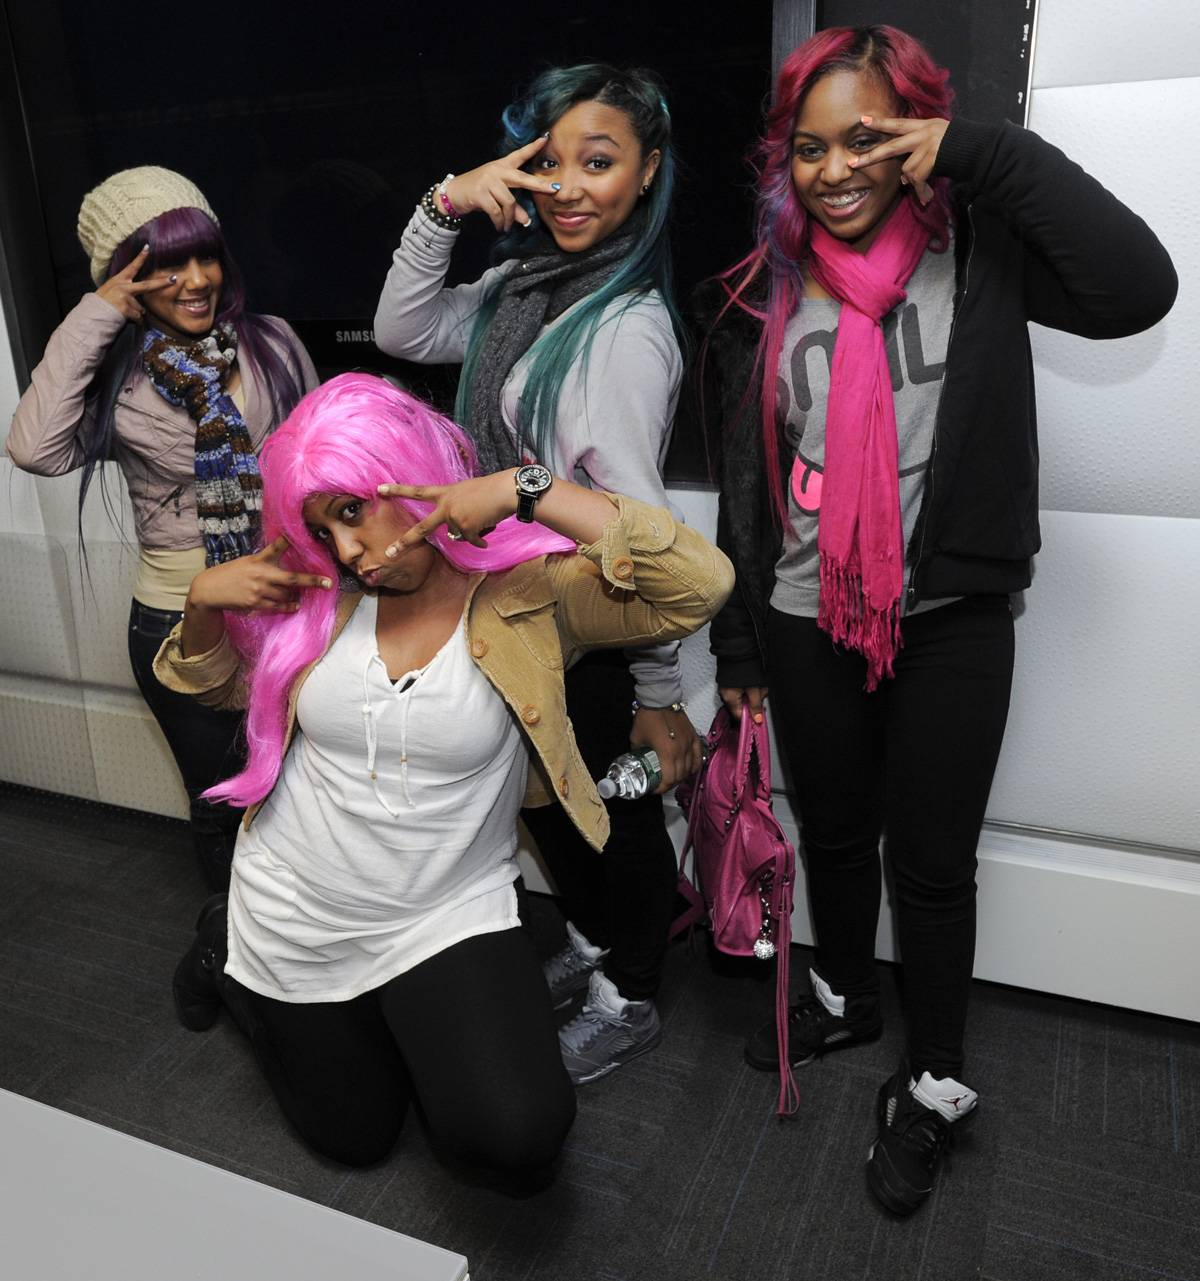 A New Member? - It looks like somebody wants to be the fourth member of the OMG Girlz, too bad all the slots are filled! Her neon pink wig is hot though!(Photo: John Ricard / BET)